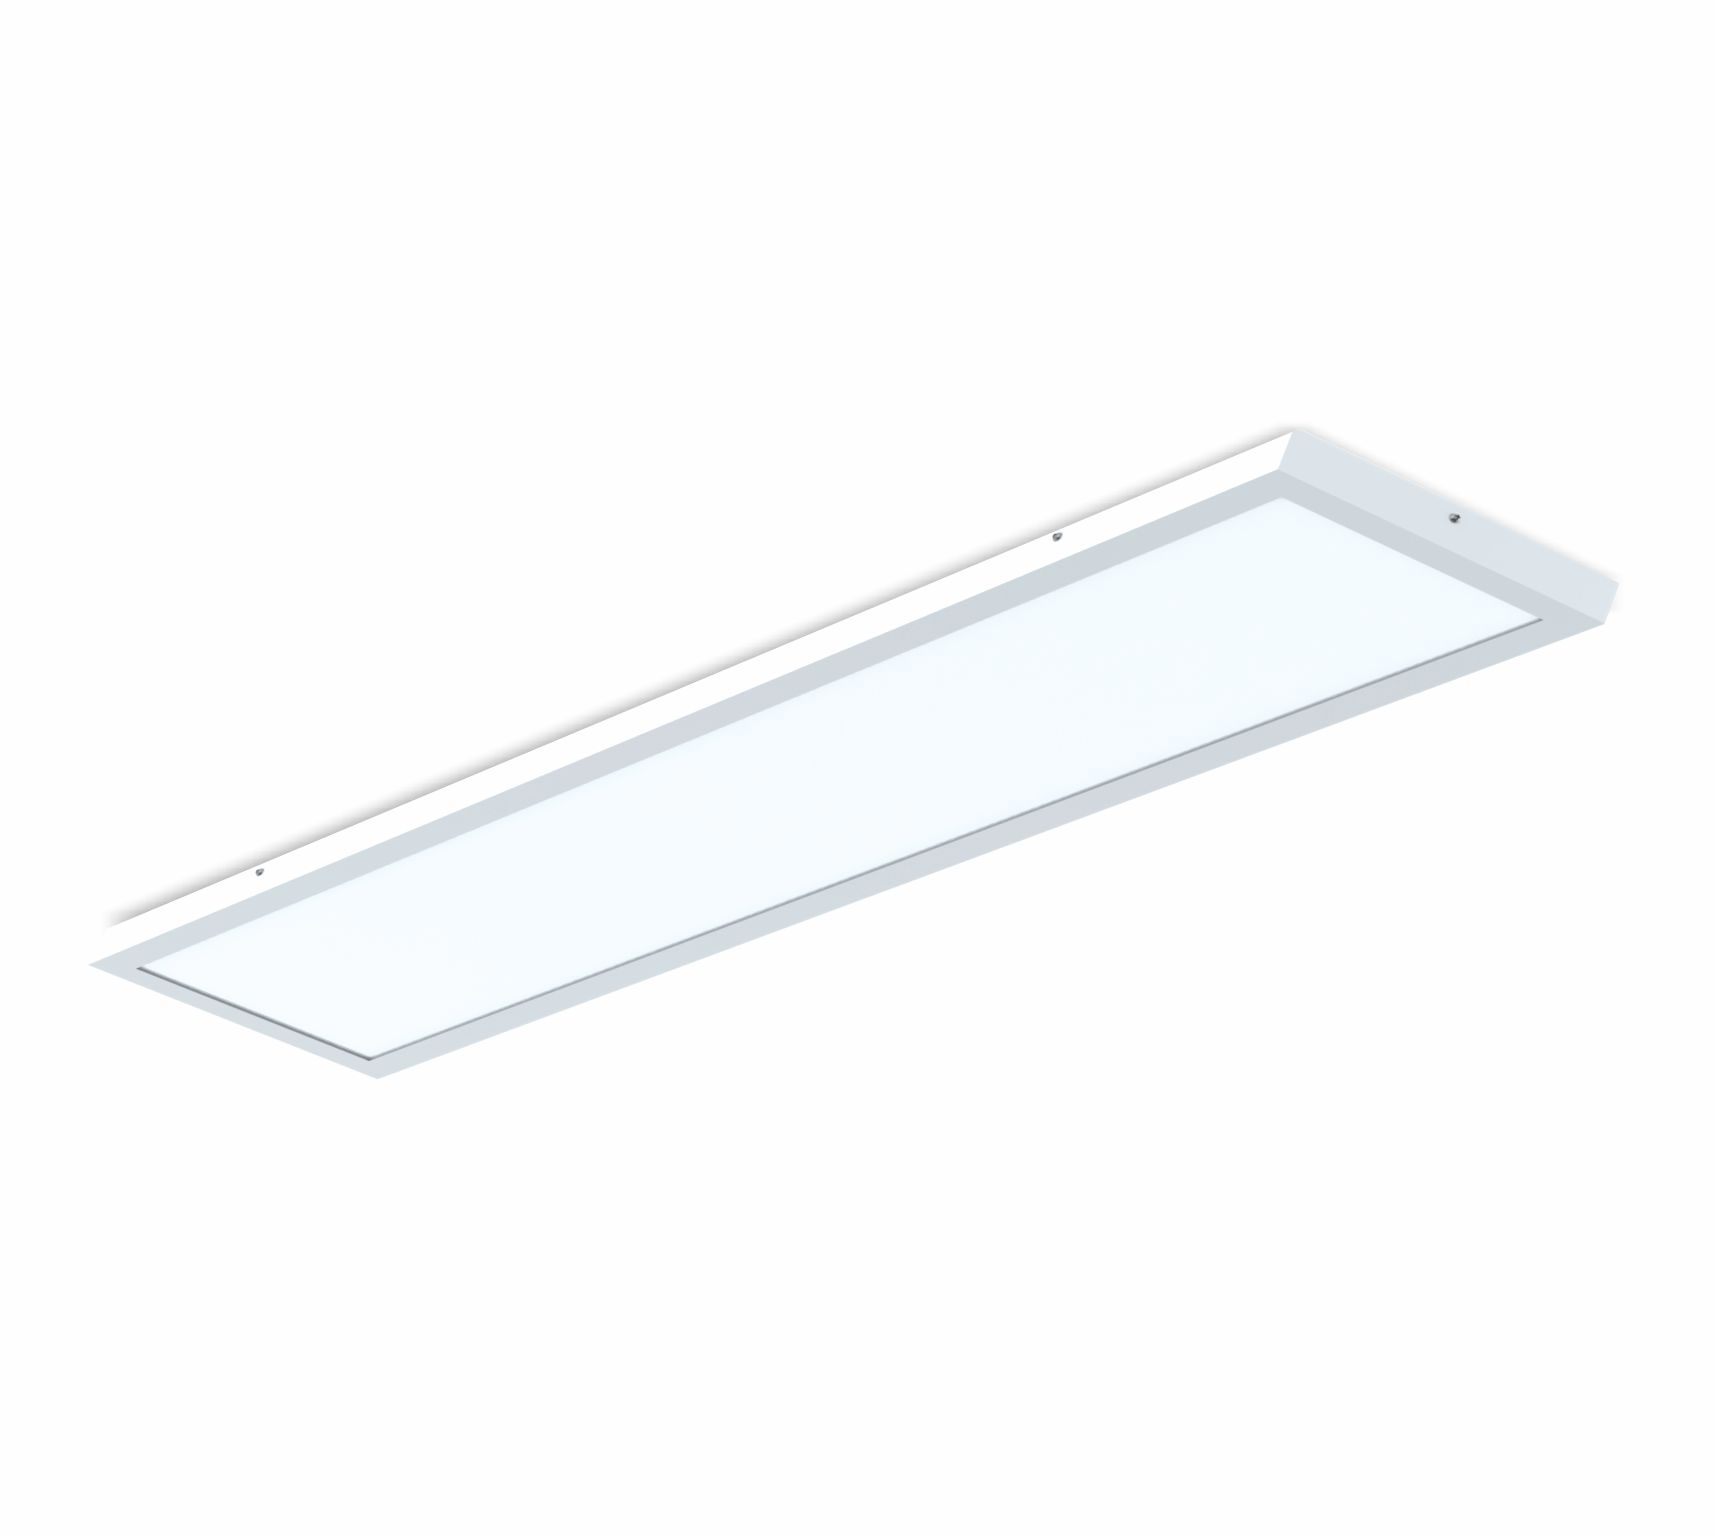 PAINELSLIMLED-PROJETO-RT-S-120-40-65-3C <span>(caixa)</span><br/>